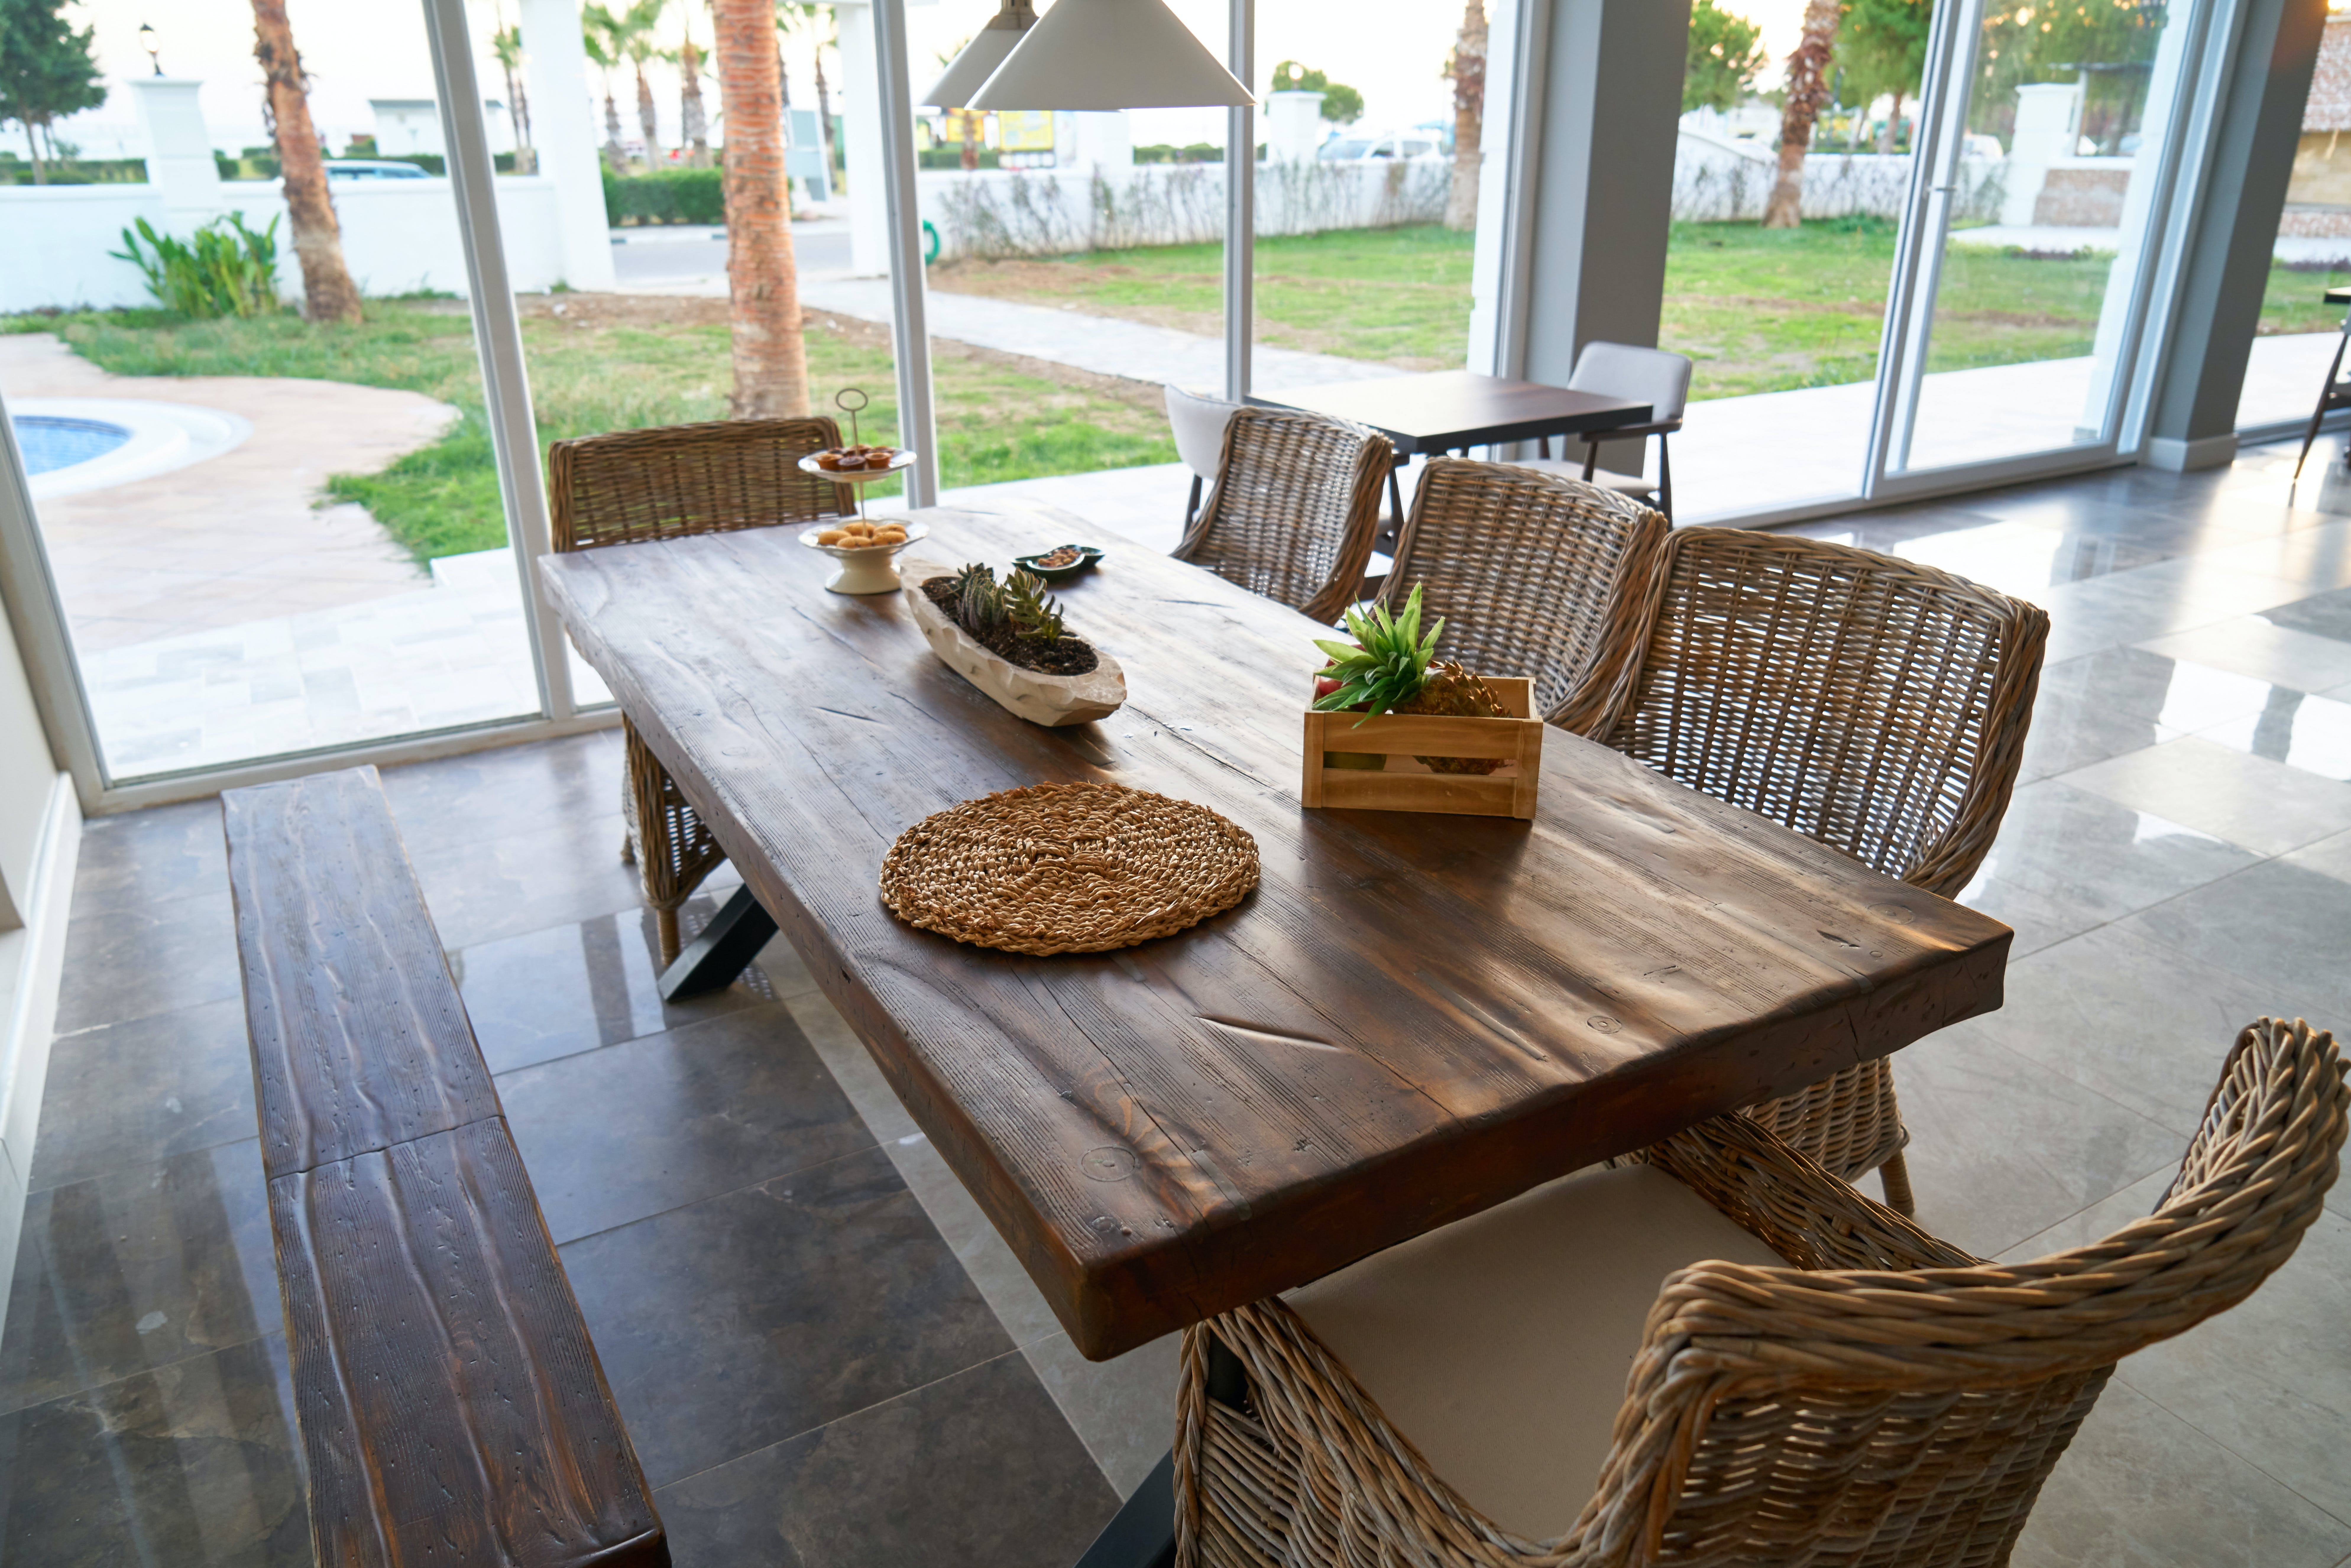 Round Mat On Dining Table